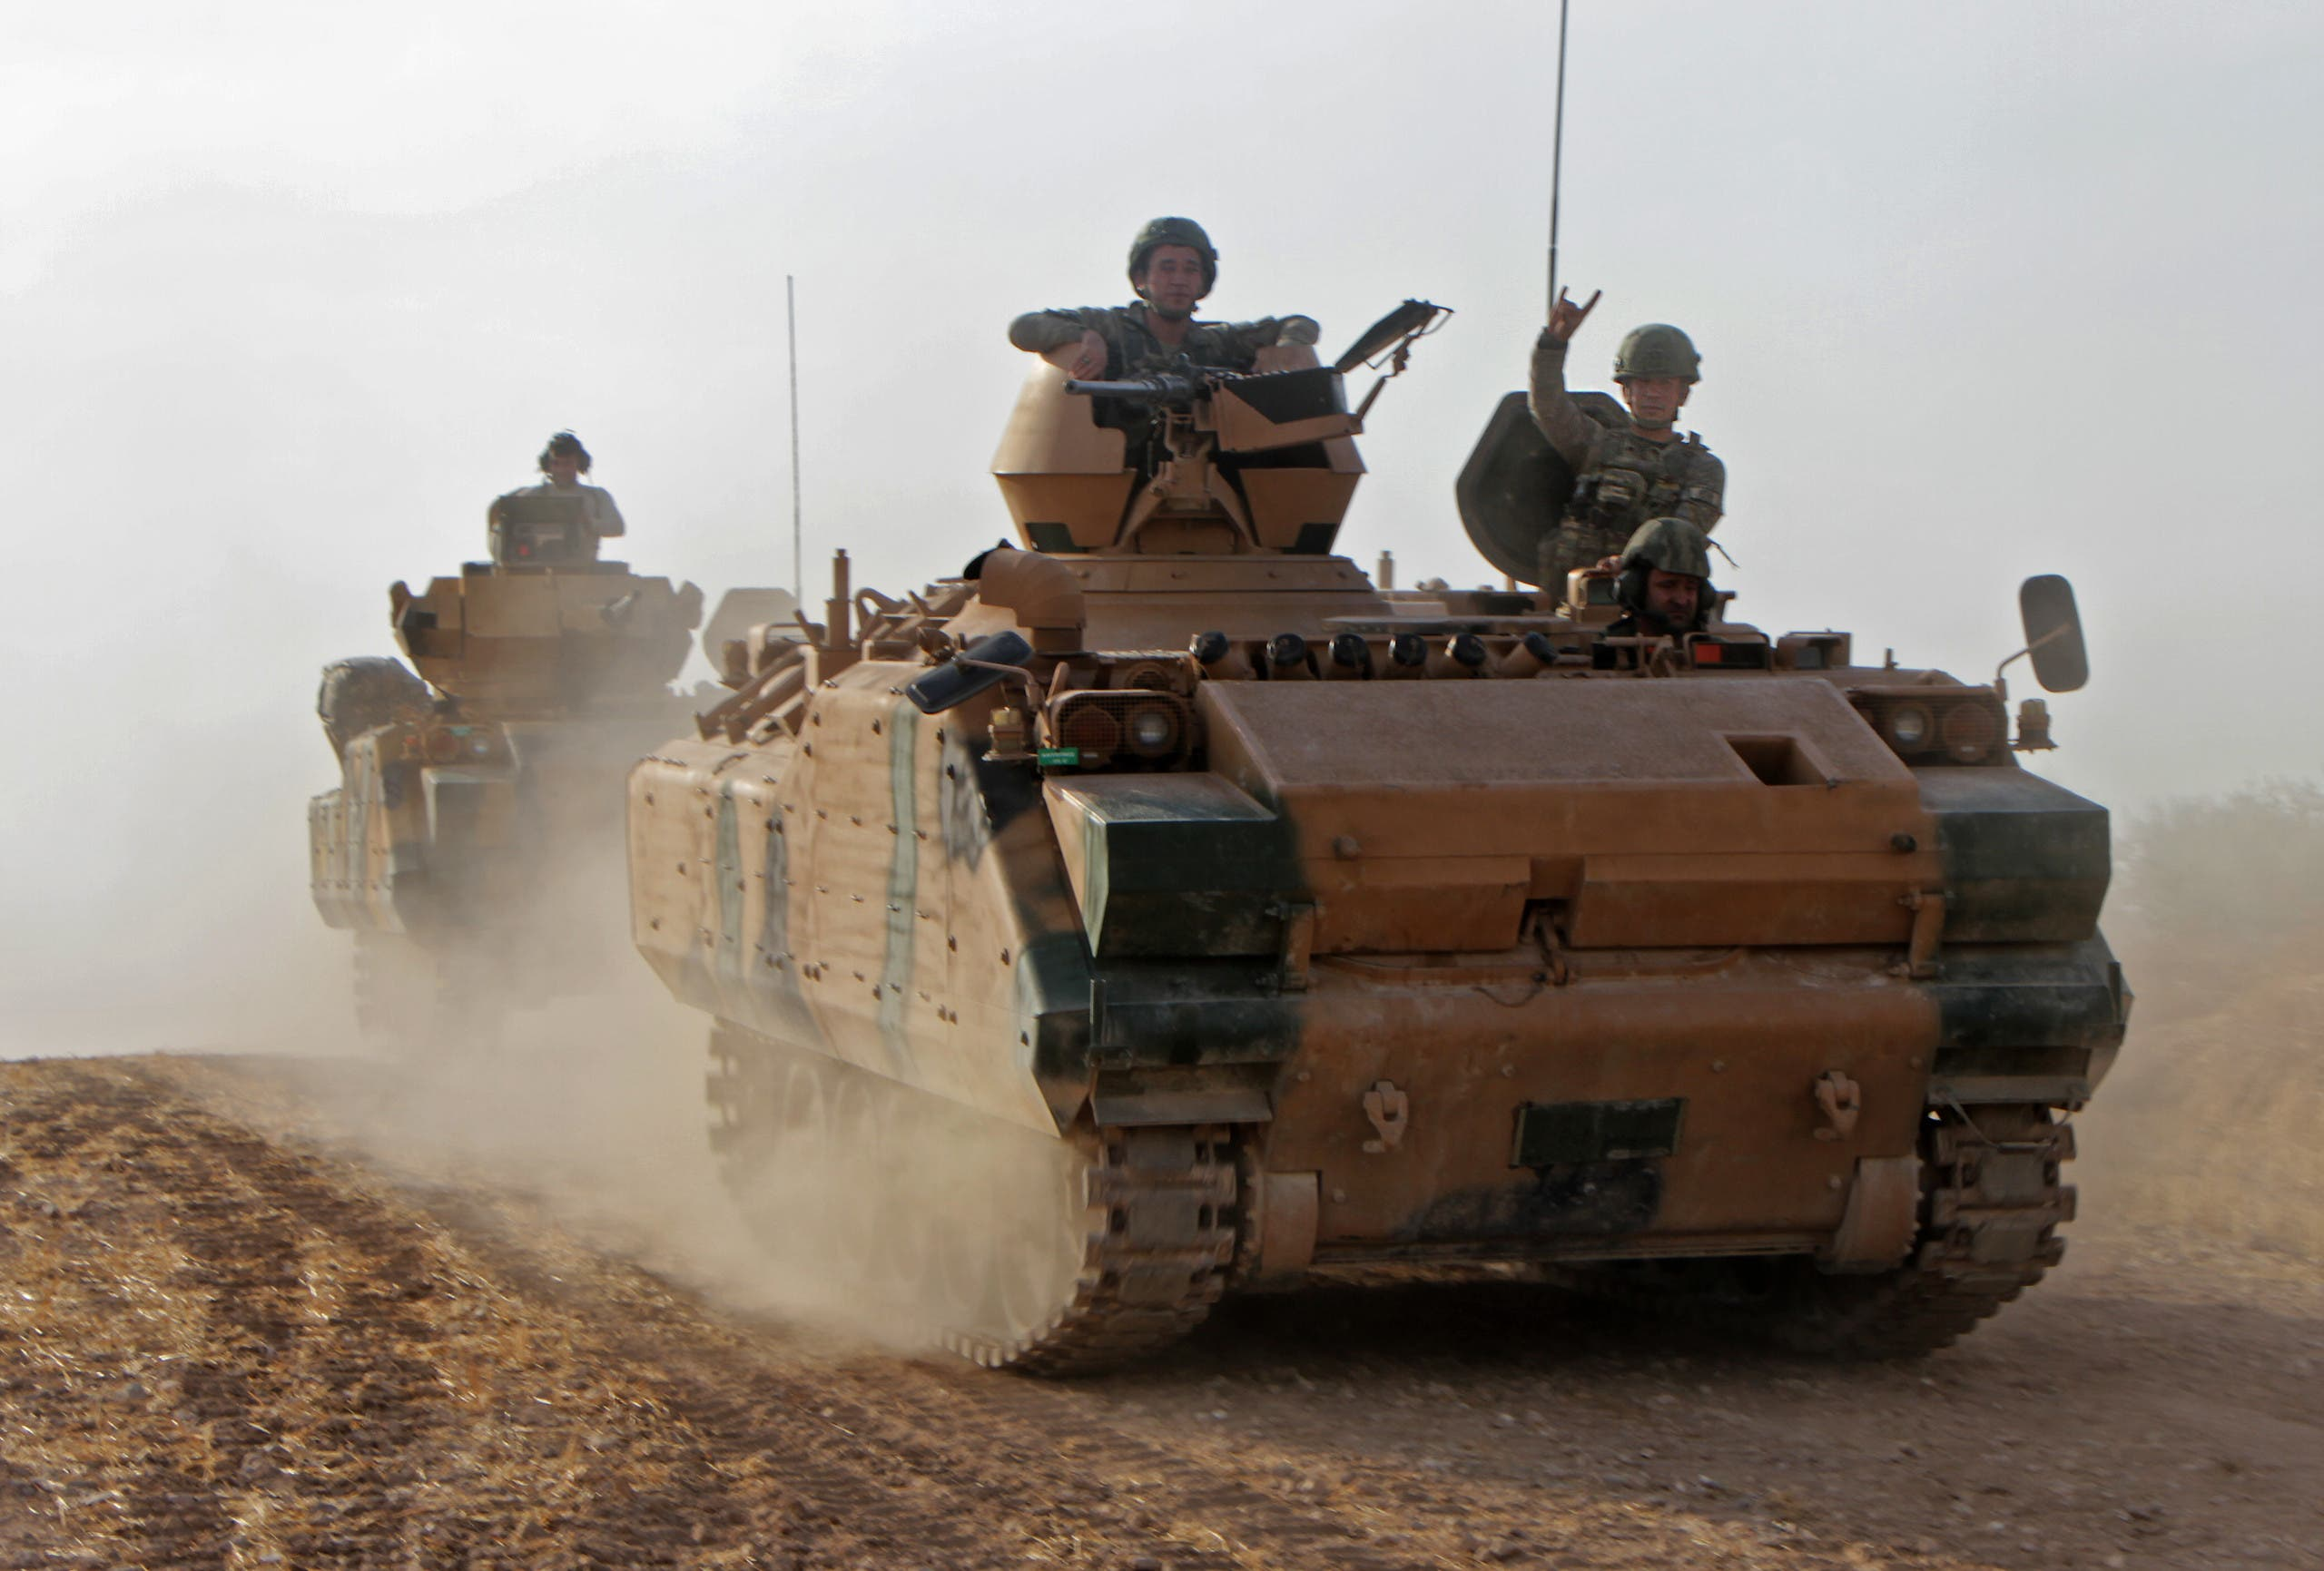 Turkish soldiers are trasported in armored personnel carriers through the town of Tukhar, north of Syria's northern city of Manbij, on October 14, 2019, as Turkey and it's allies continues their assault on Kurdish-held border towns in northeastern Syria. (AFP)